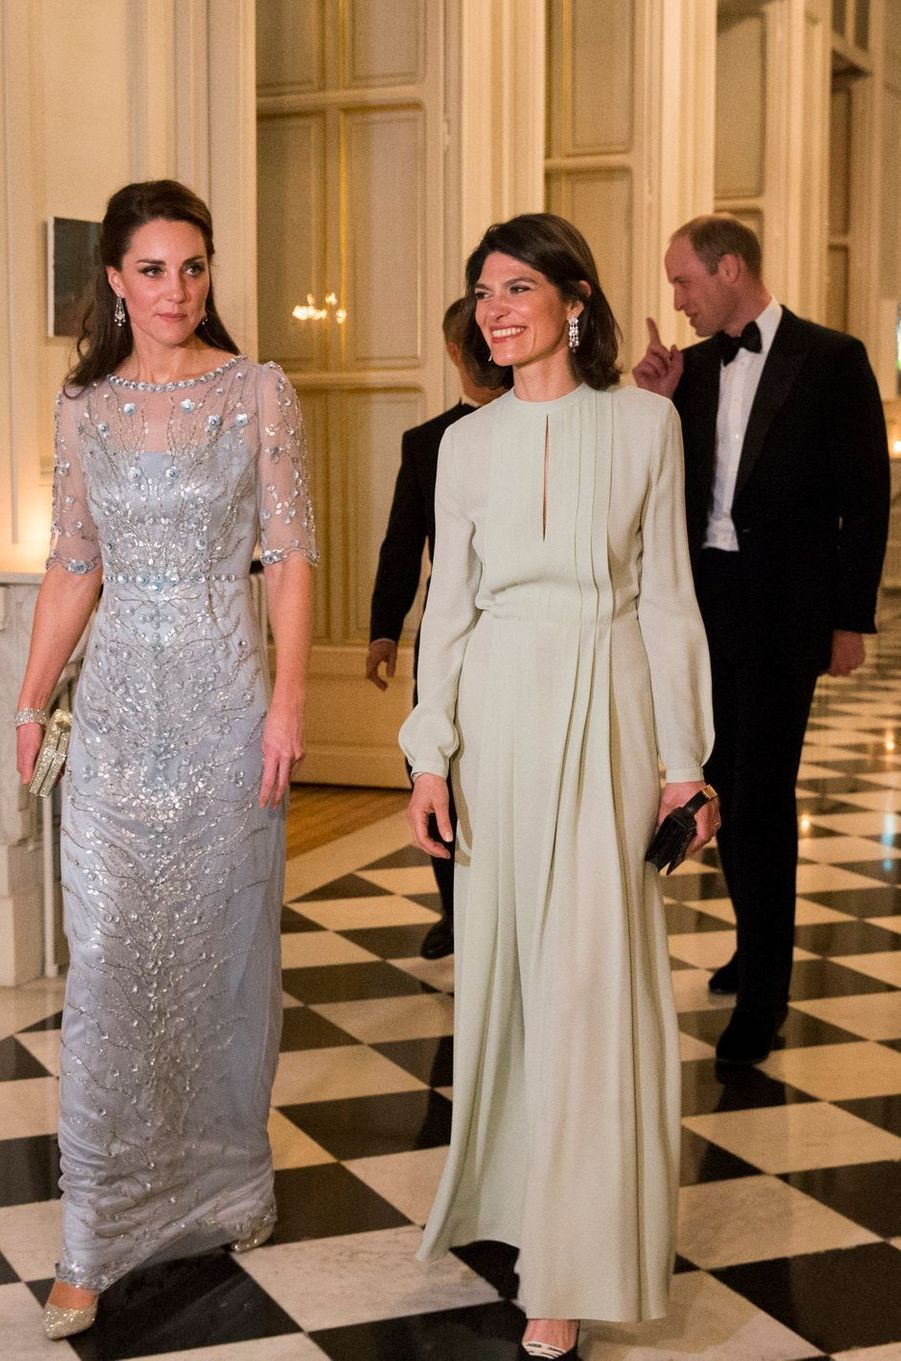 La duchesse de Cambridge, née Kate Middleton, en Jenny Packham à Paris le 17 mars 2017